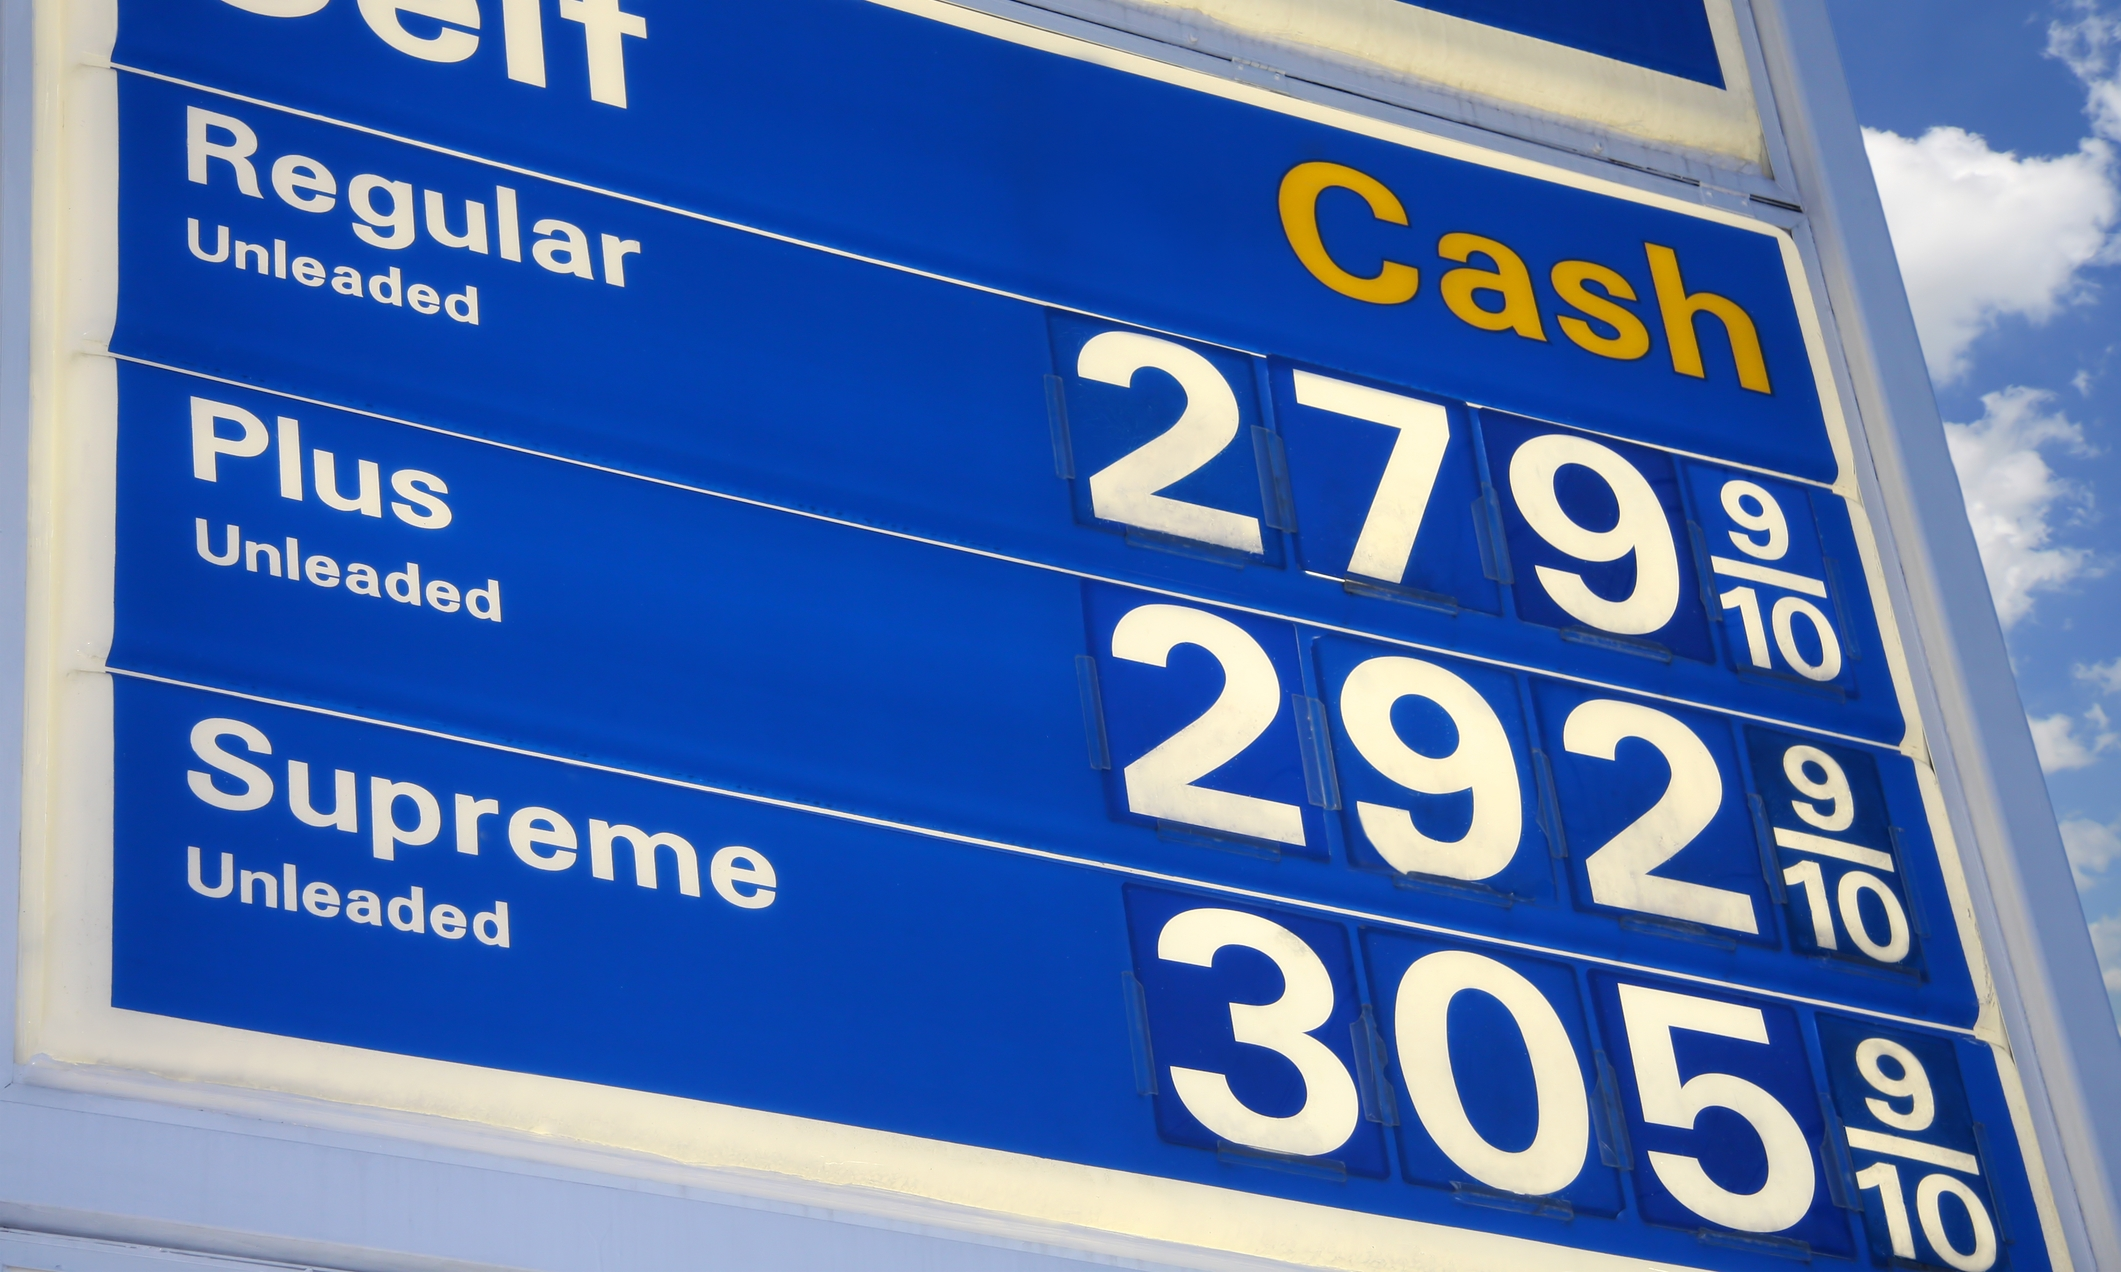 Economic sanctions against Iran could result in higher gas prices